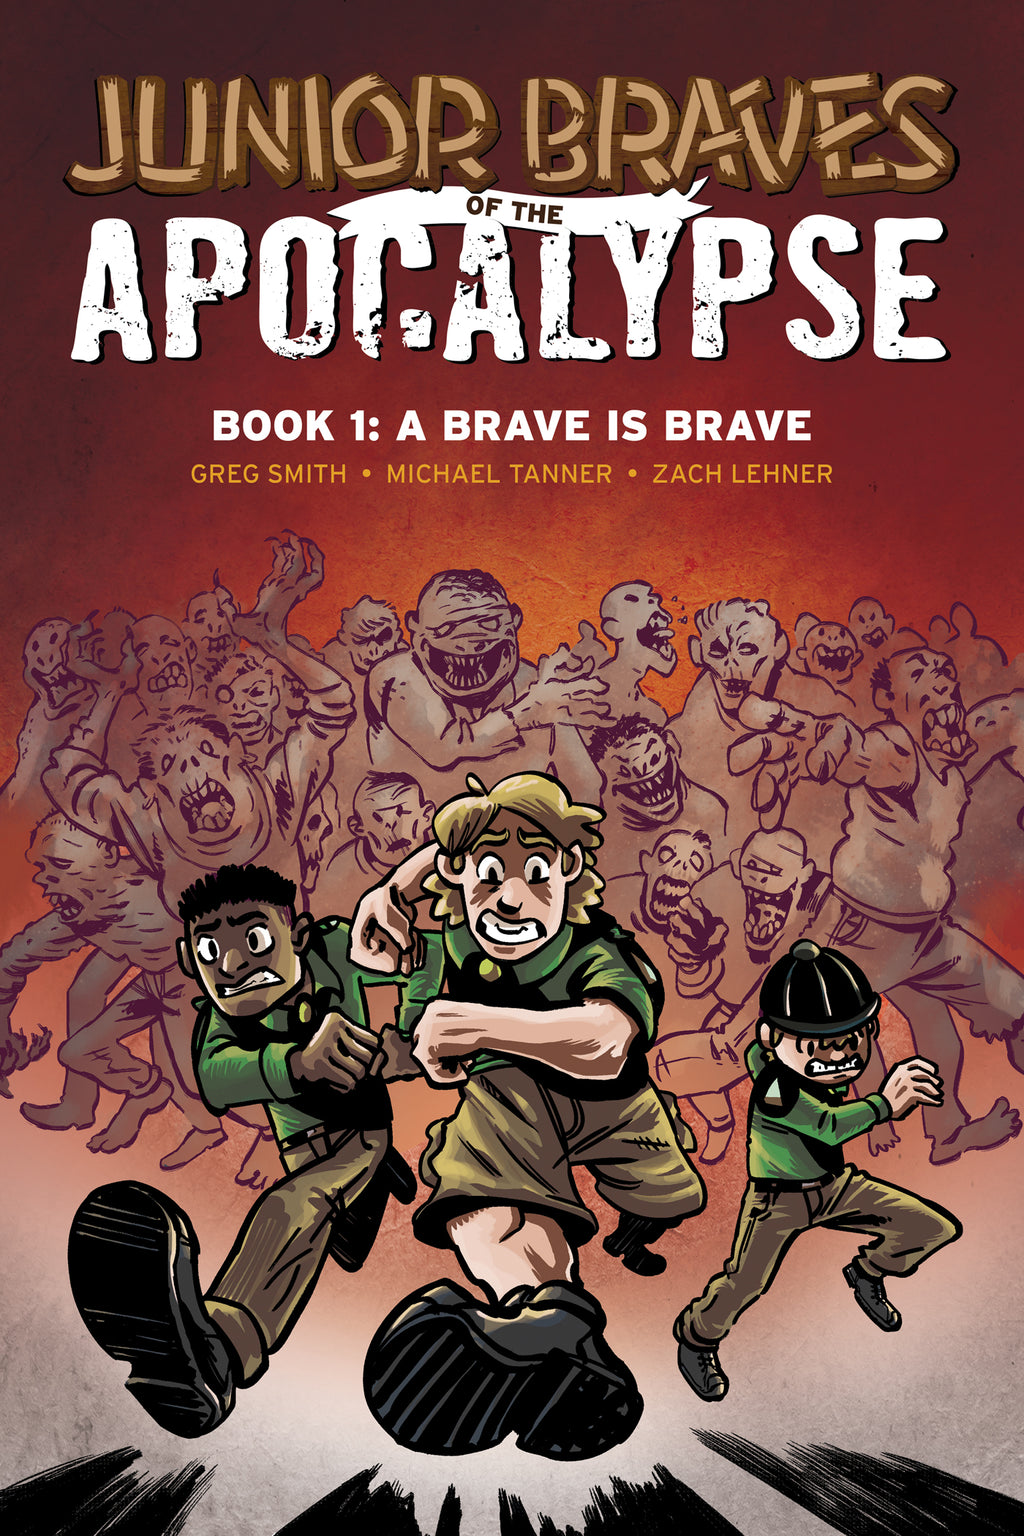 Junior Braves of the Apocalypse Vol. 1